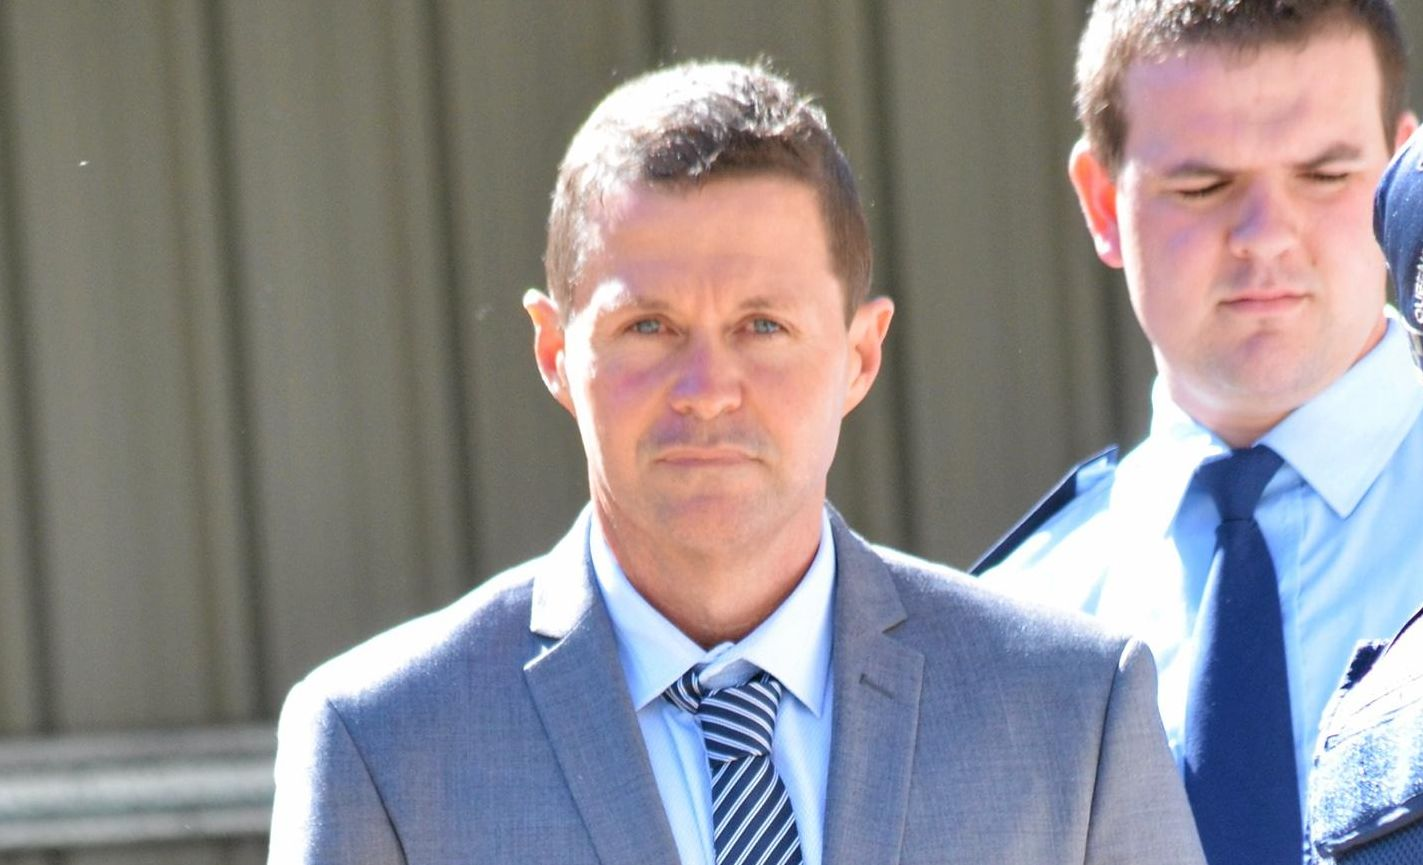 Louis James Mahony has pleaded not guilty to a charge or murder.